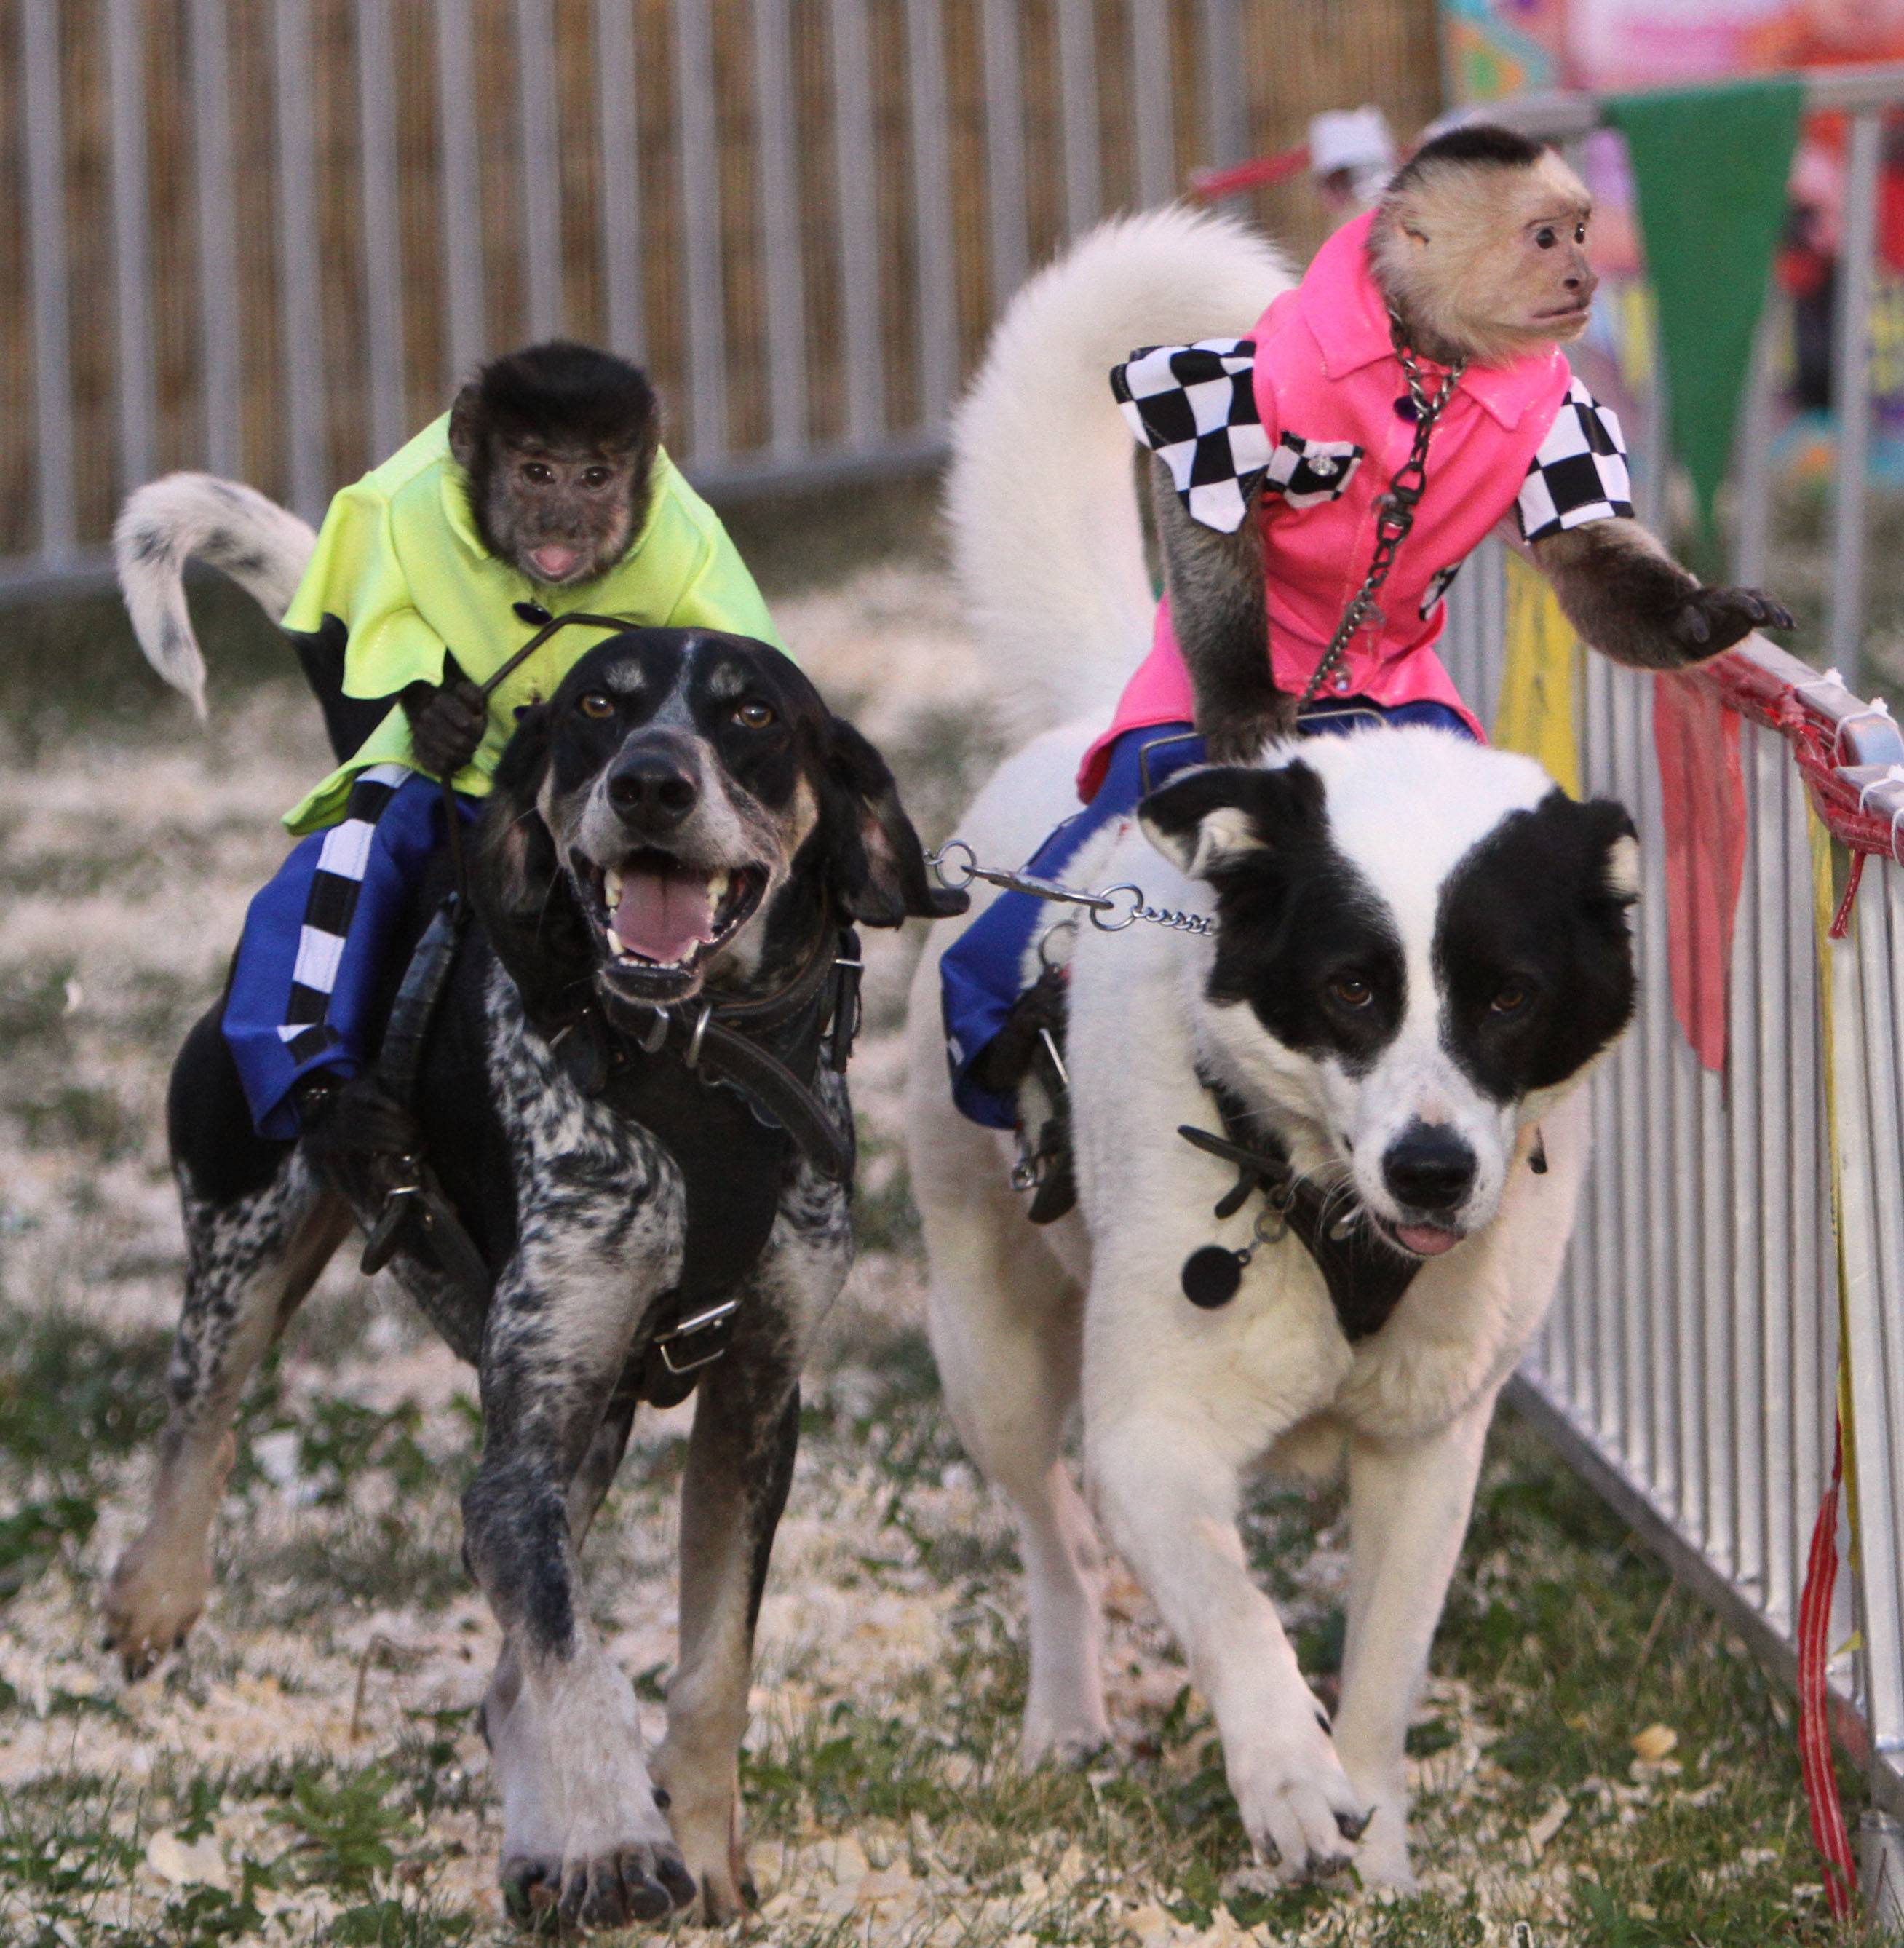 The Lake County Fair's Banana Derby features racing dogs with monkey jockeys.